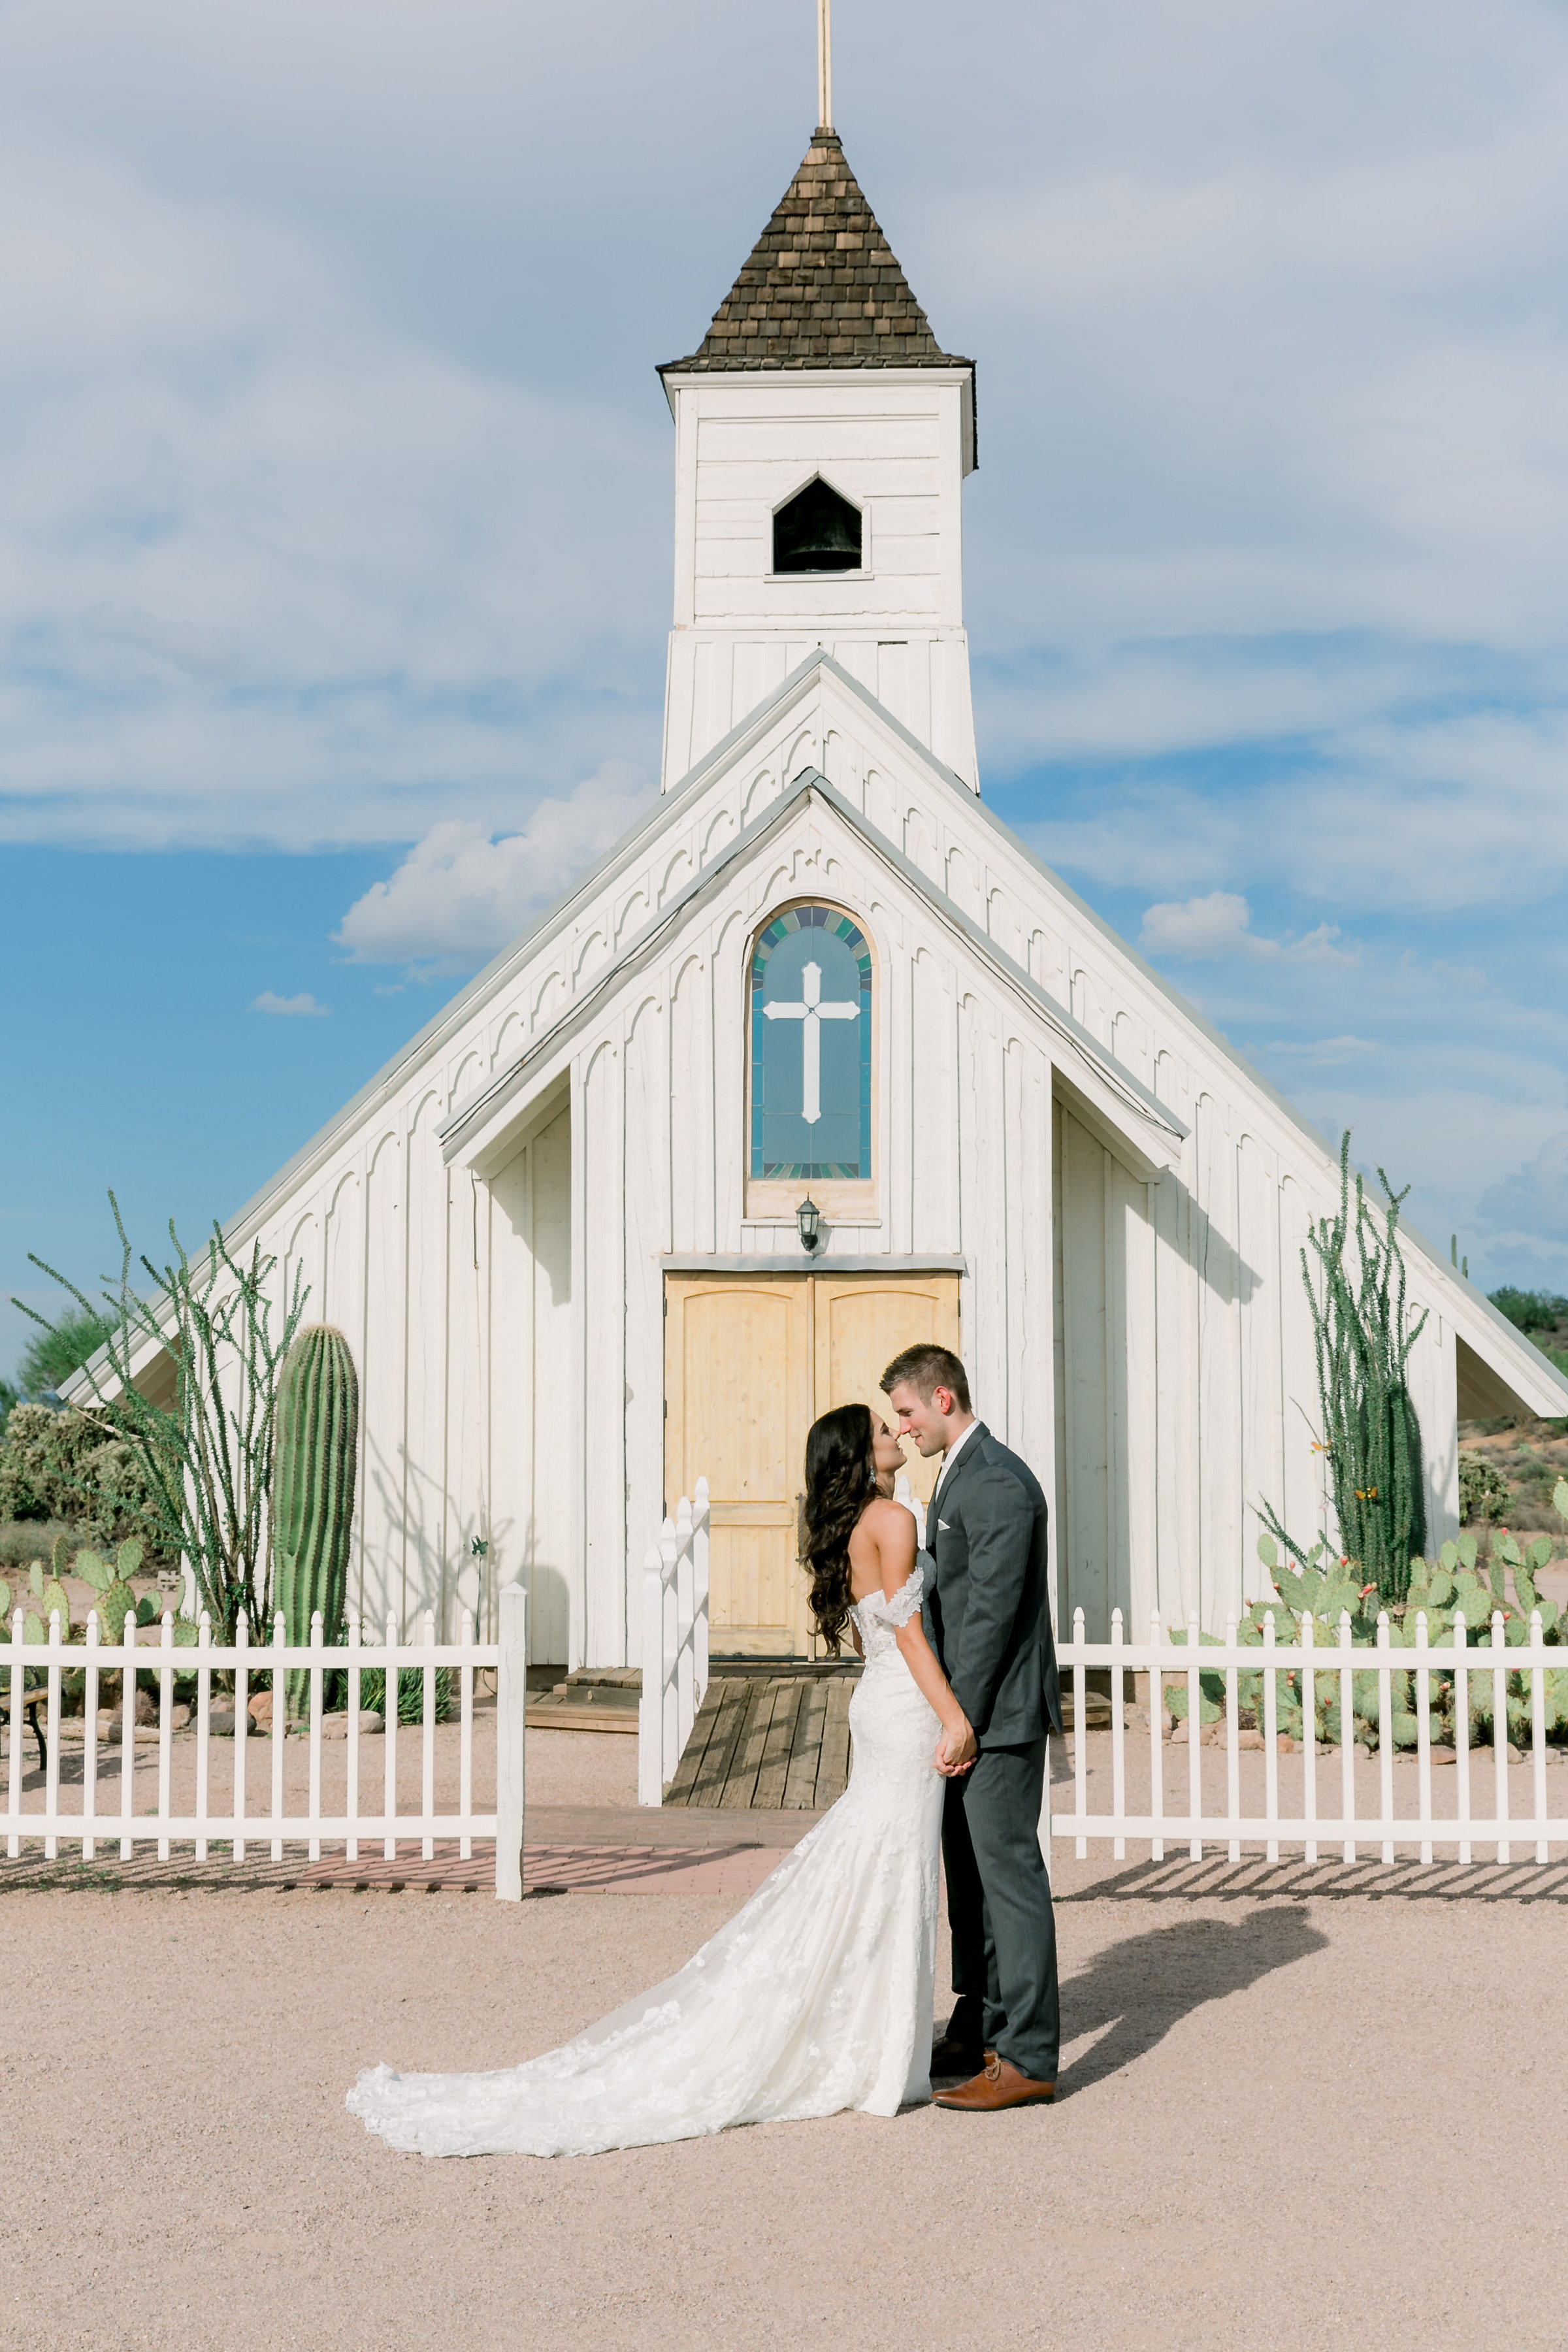 Karlie Colleen Photography - Arizona Wedding - The Paseo Venue - Jackie & Ryan -139